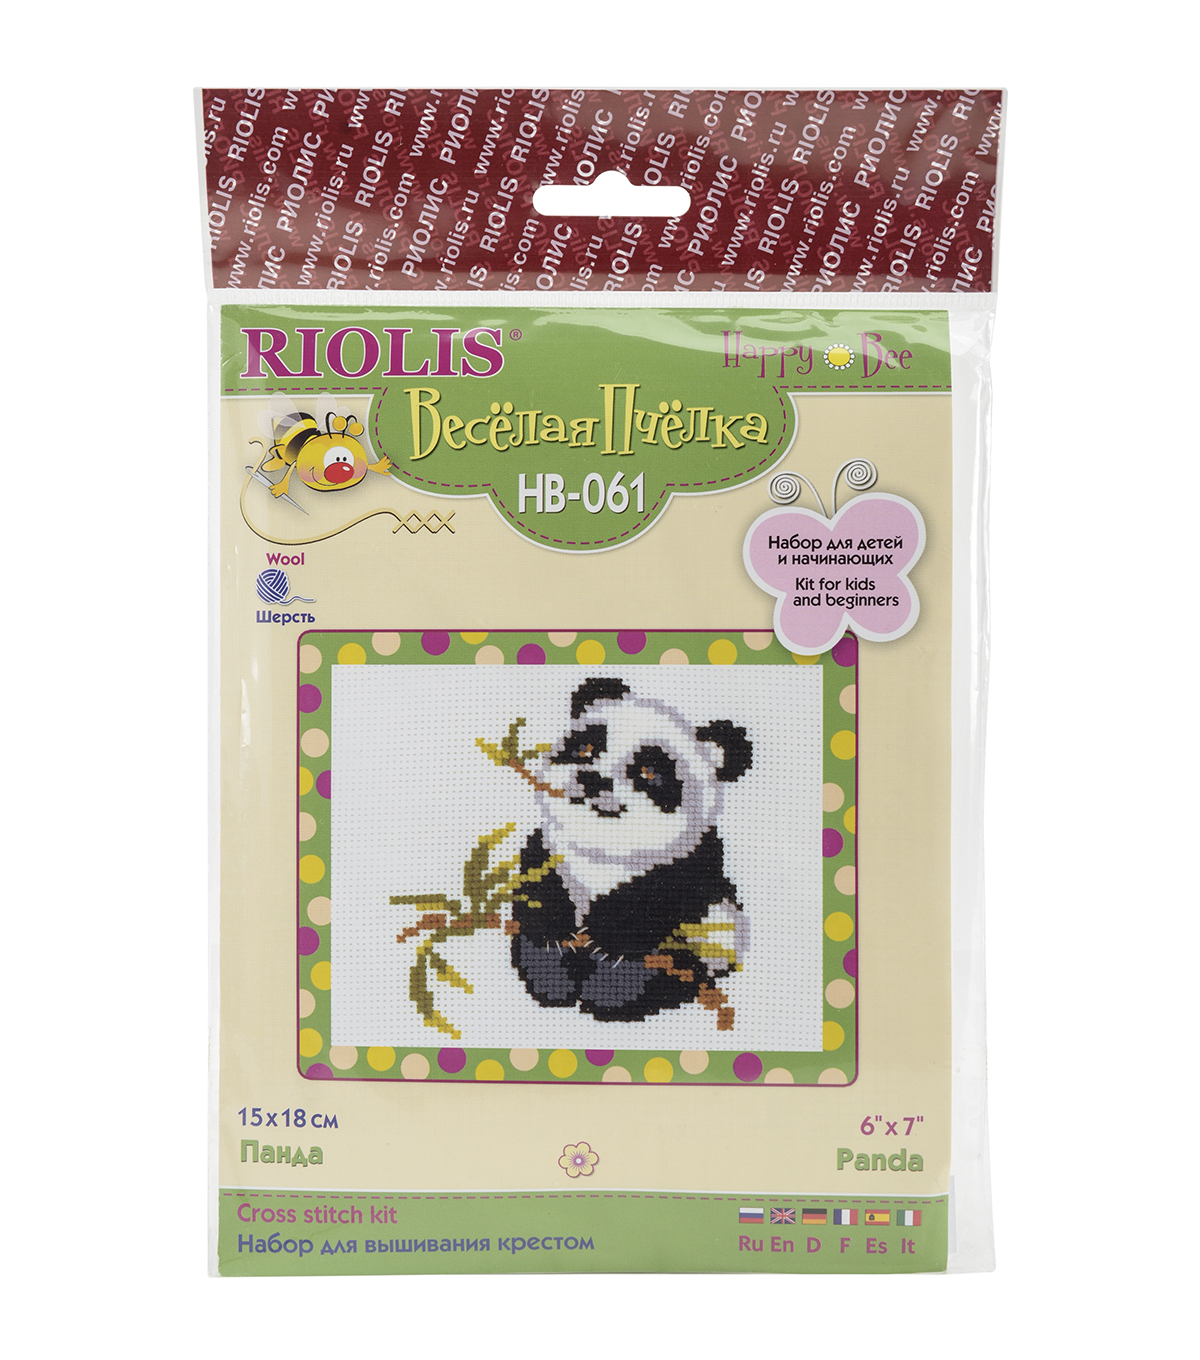 Riolis Panda Counted Cross Stitch Kit